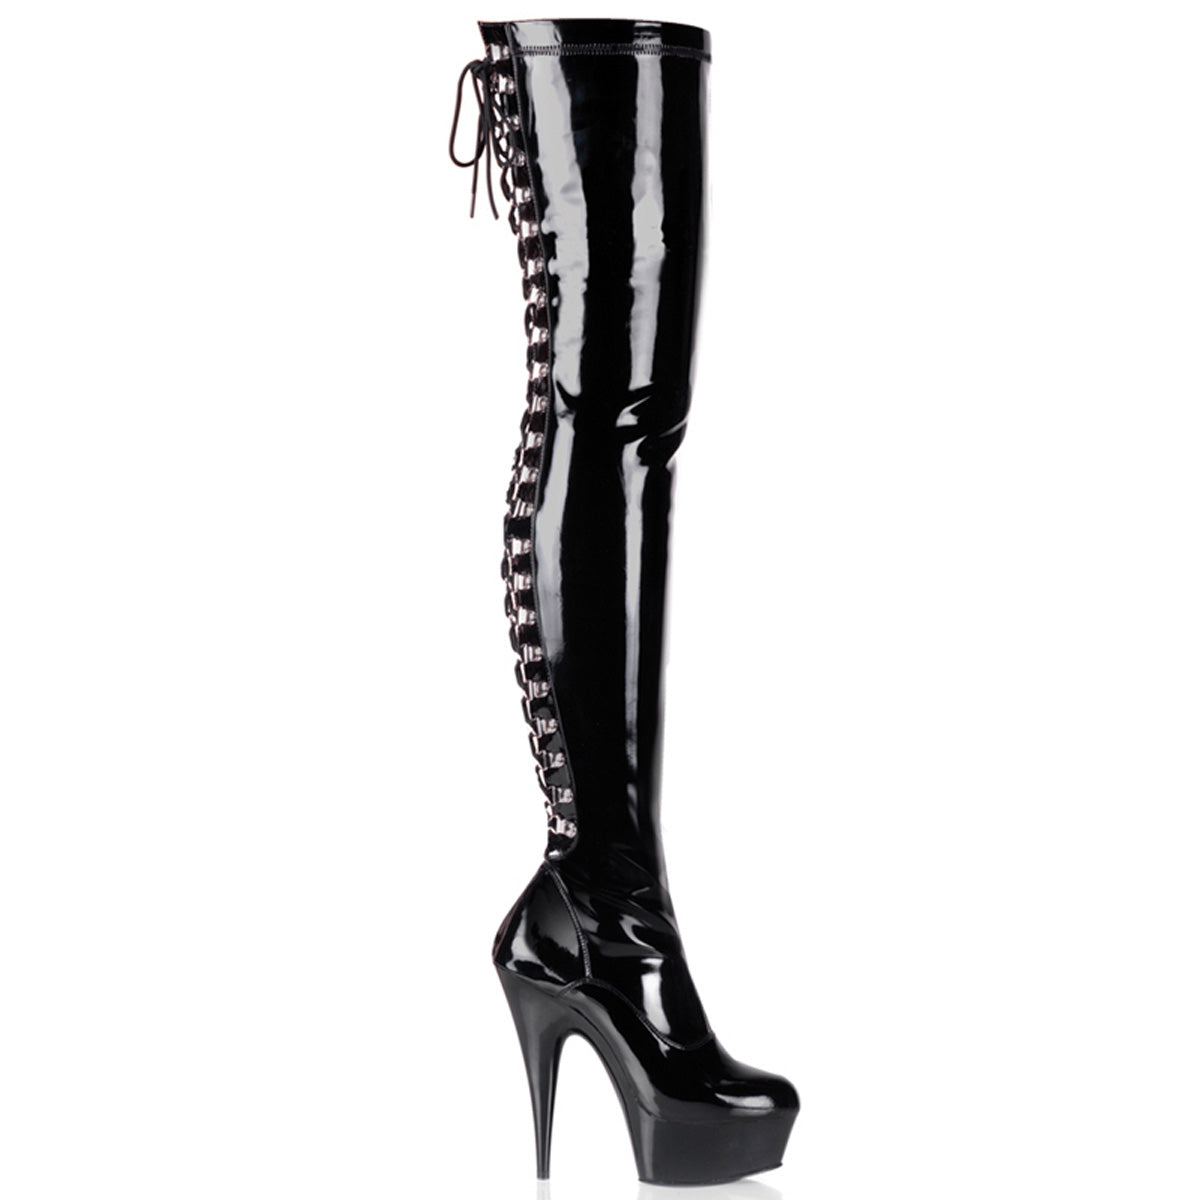 "6"" Heel, 1 3/4"" PF Back Lace Thigh Boot, Side Zip"